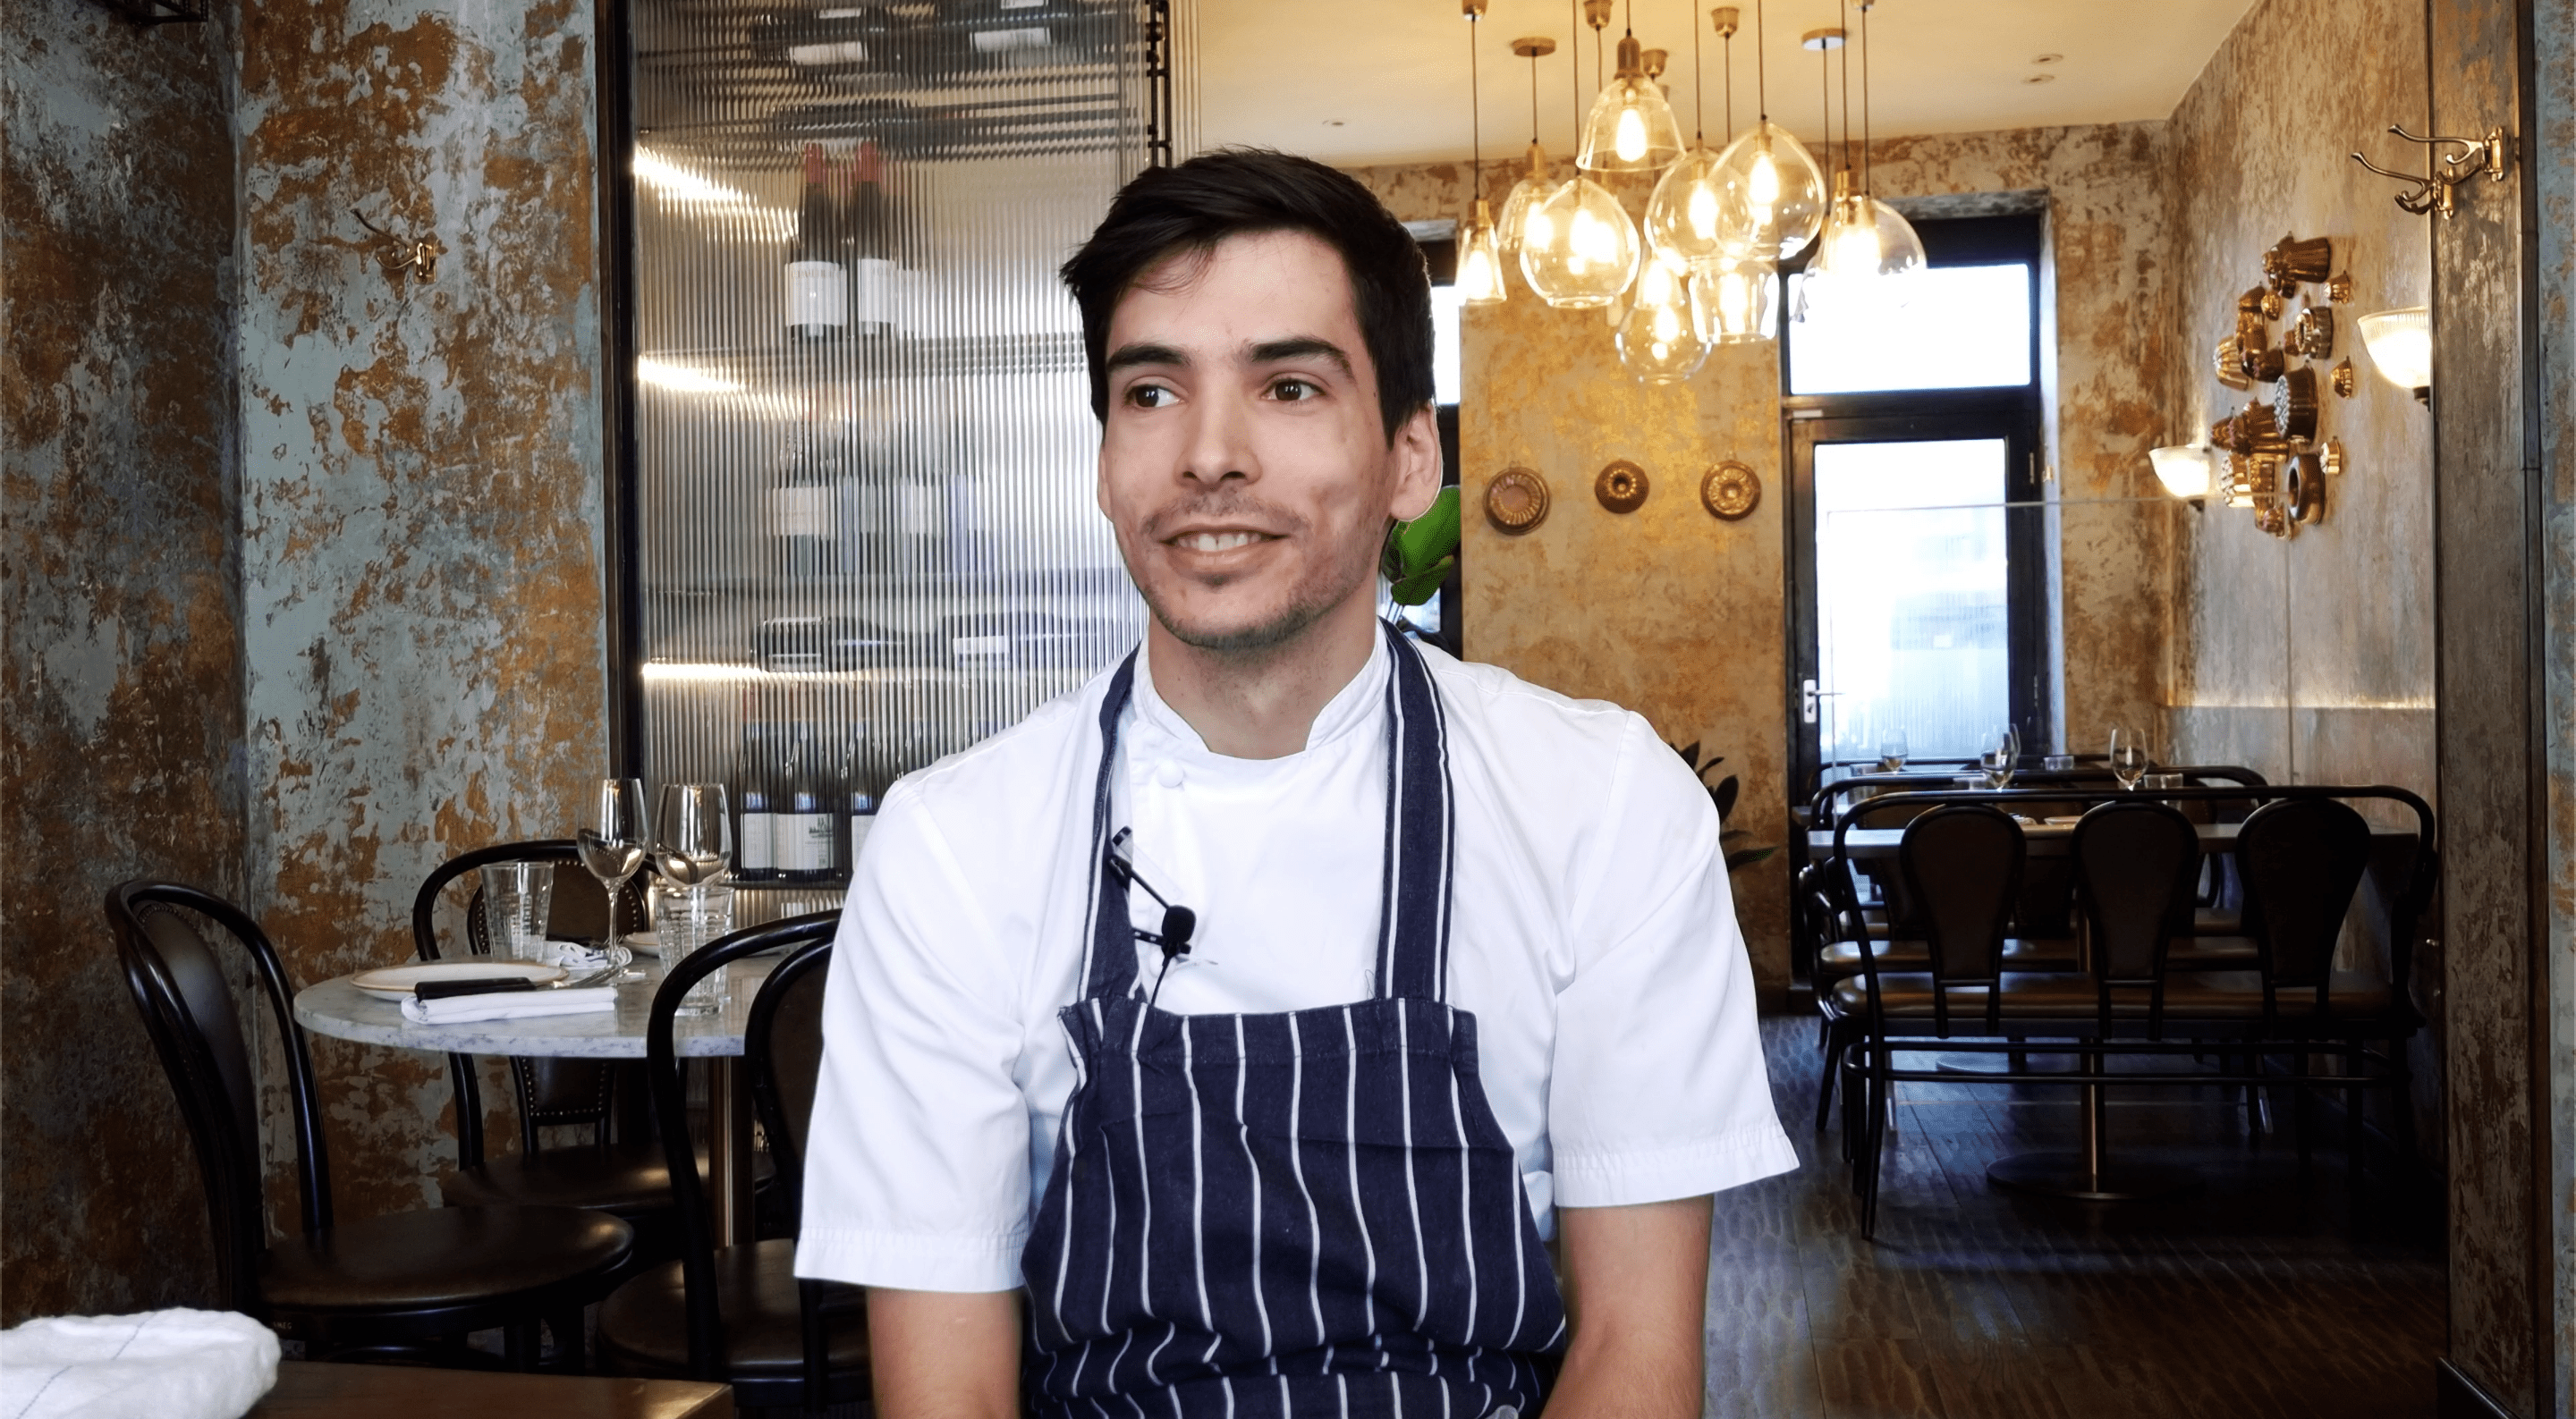 Nuno Resende, Head Chef at the Ninth